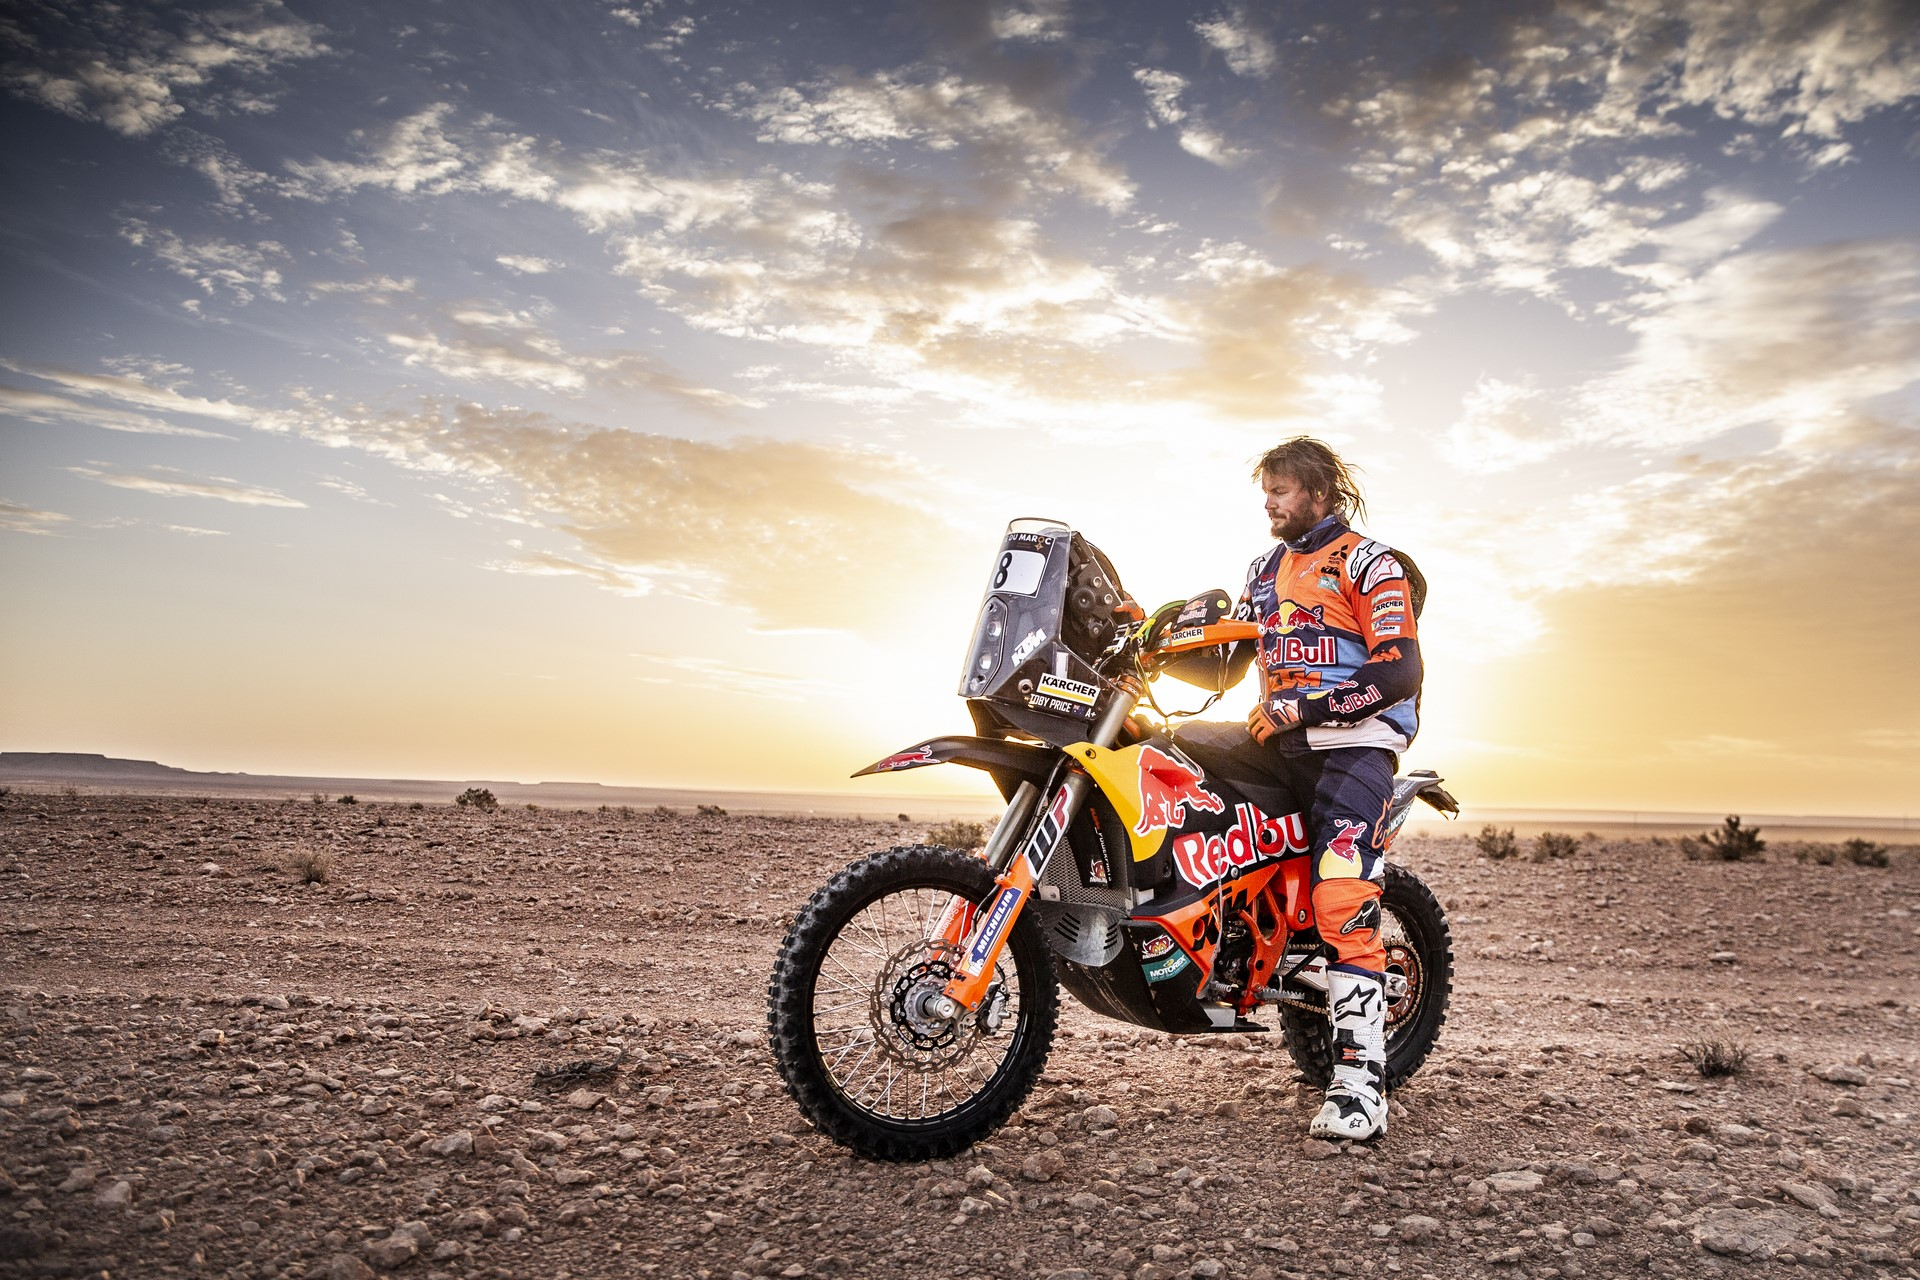 Toby Price before the 2nd stage of Rally Du Maroc in Erfoud, Morocco on October 06, 2018